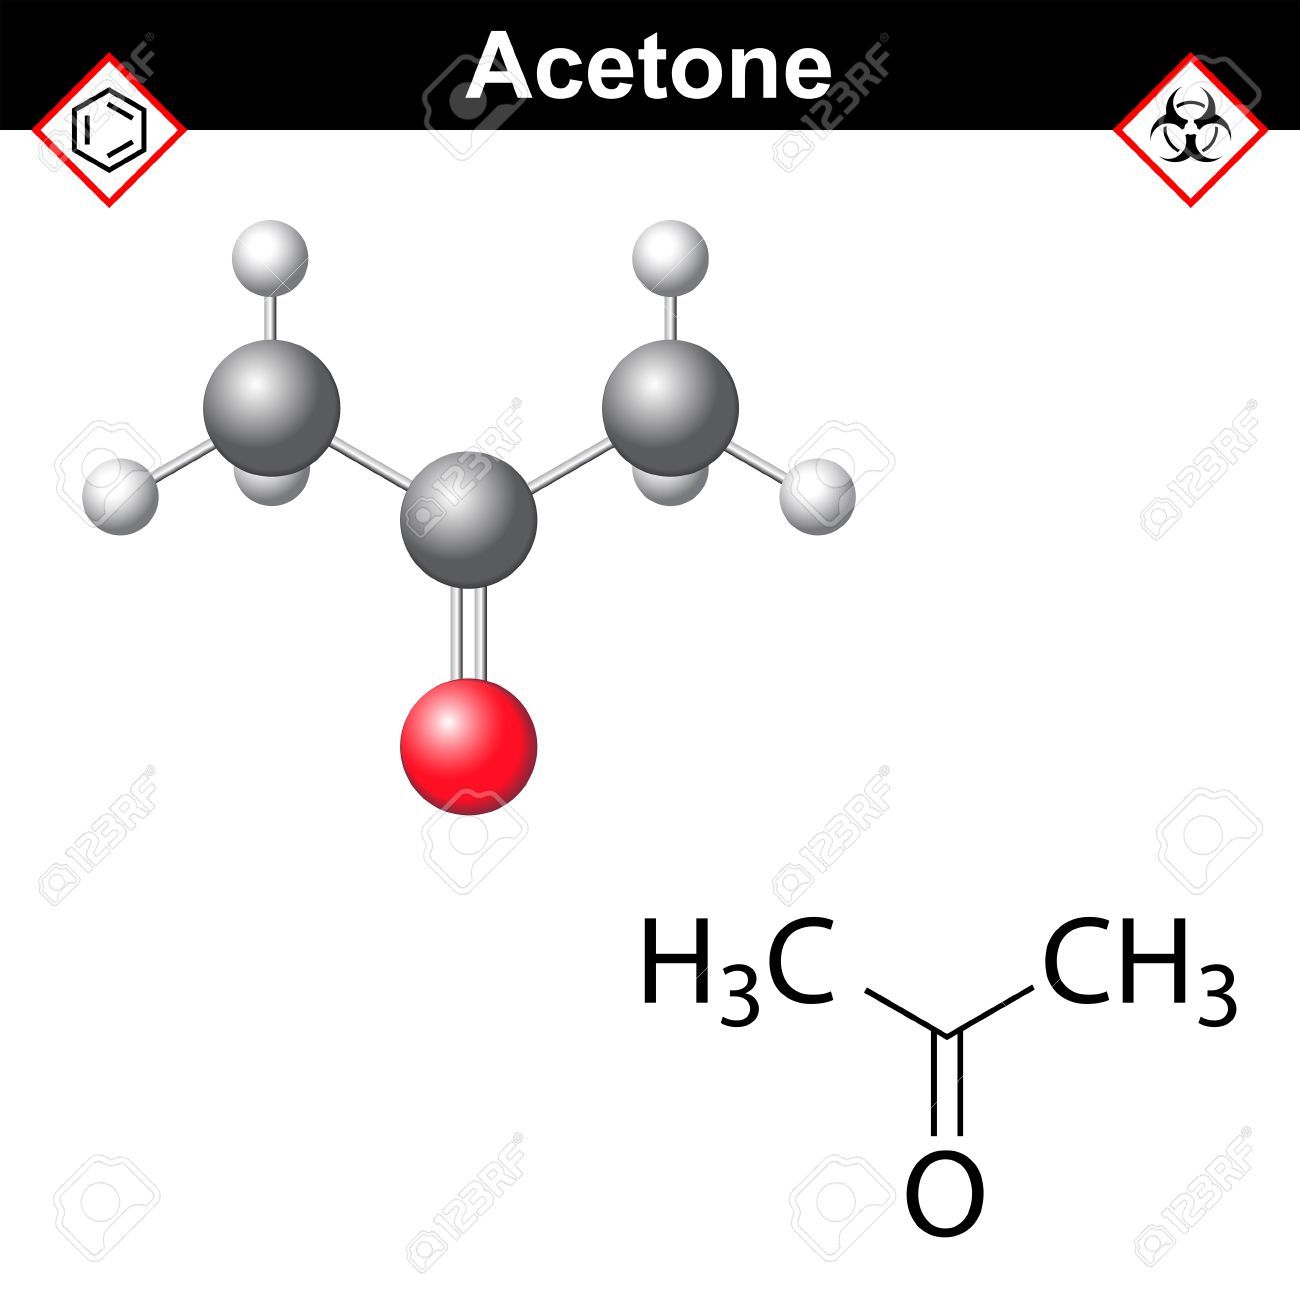 Acetone Molecule - Structural Chemical Formula And Model, One ...